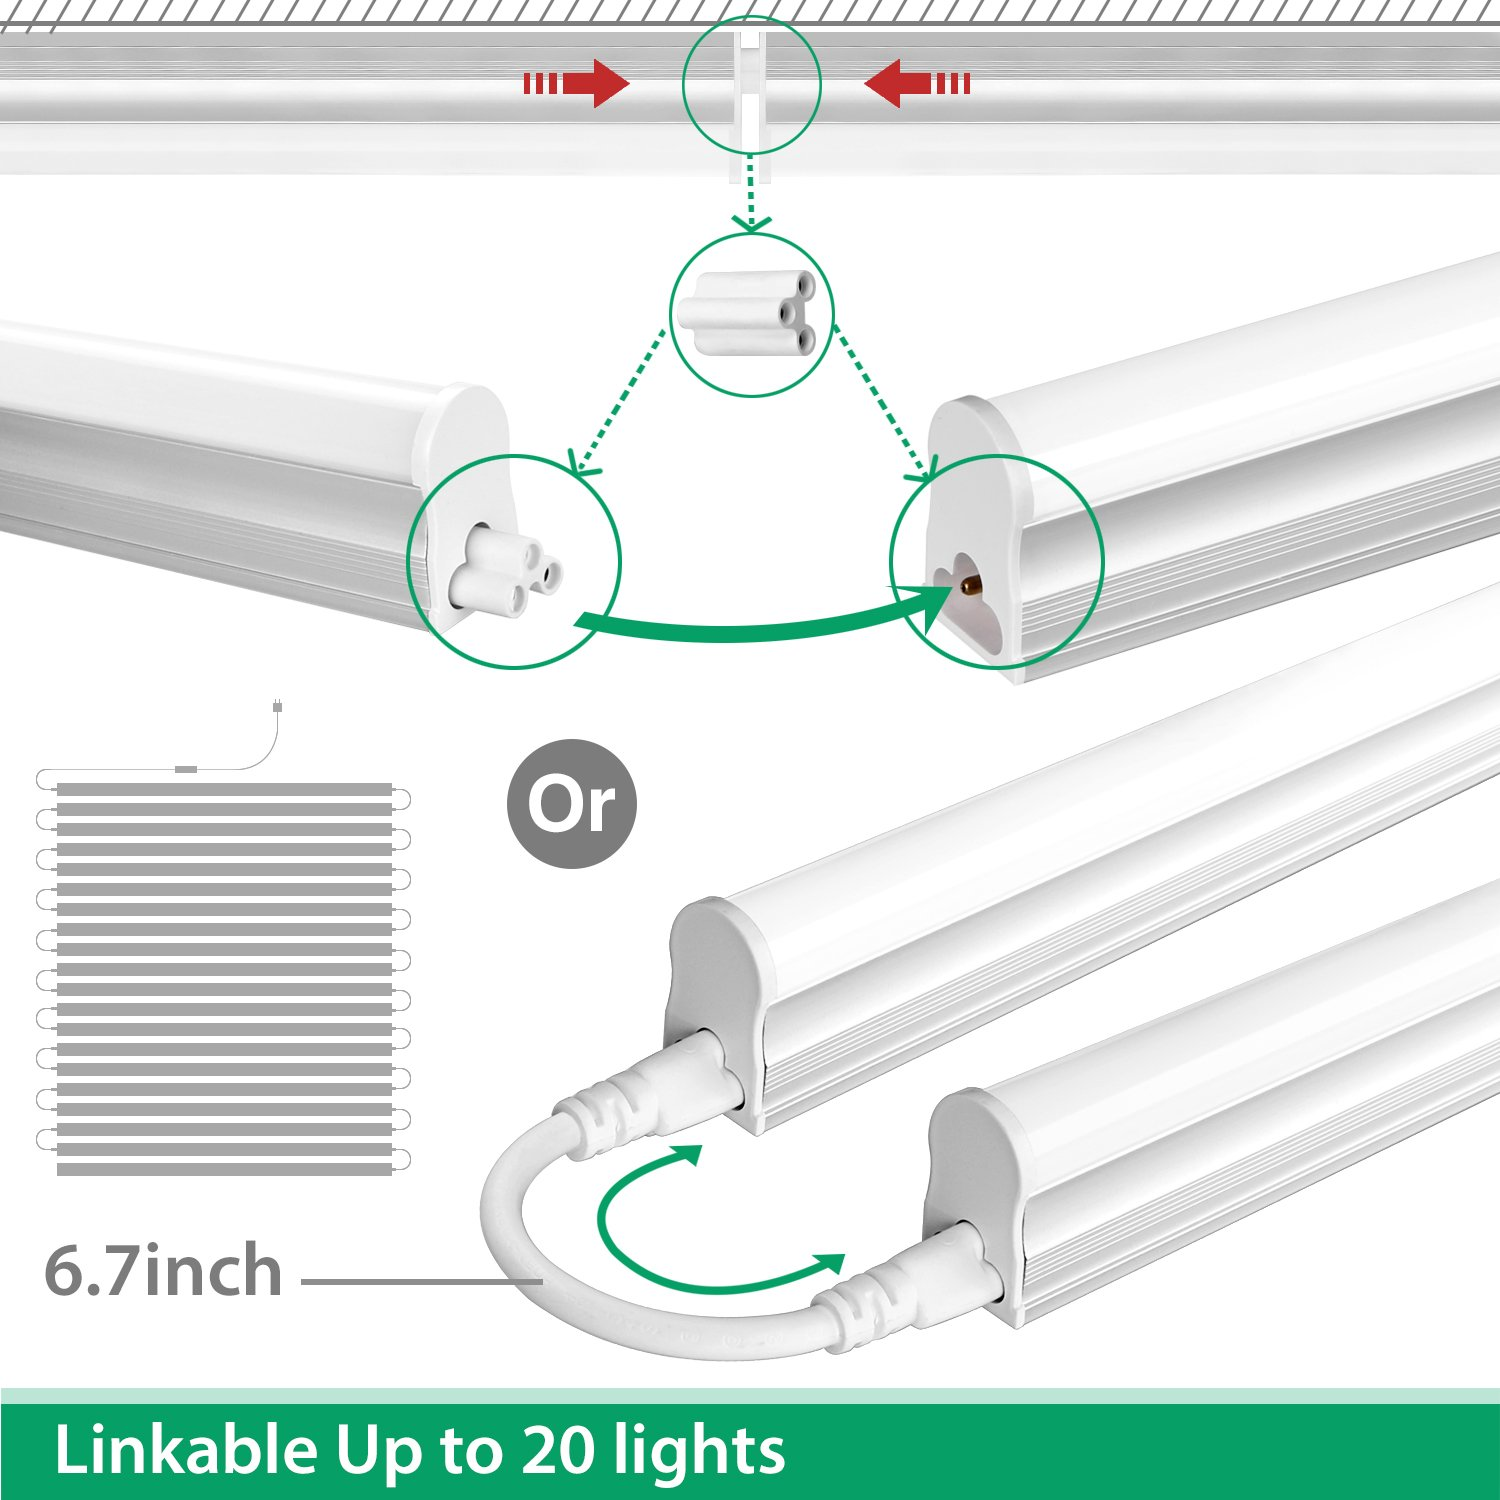 FrenchMay LED T5 mini utility linkable shop light 4ft, 22W, 85CRI, 2200Lumens, 5000K, 32w Fluorescent Equivalent, integrated ceiling light & under Cabinet shop light for garage, workshop, basement by FrenchMay (Image #2)